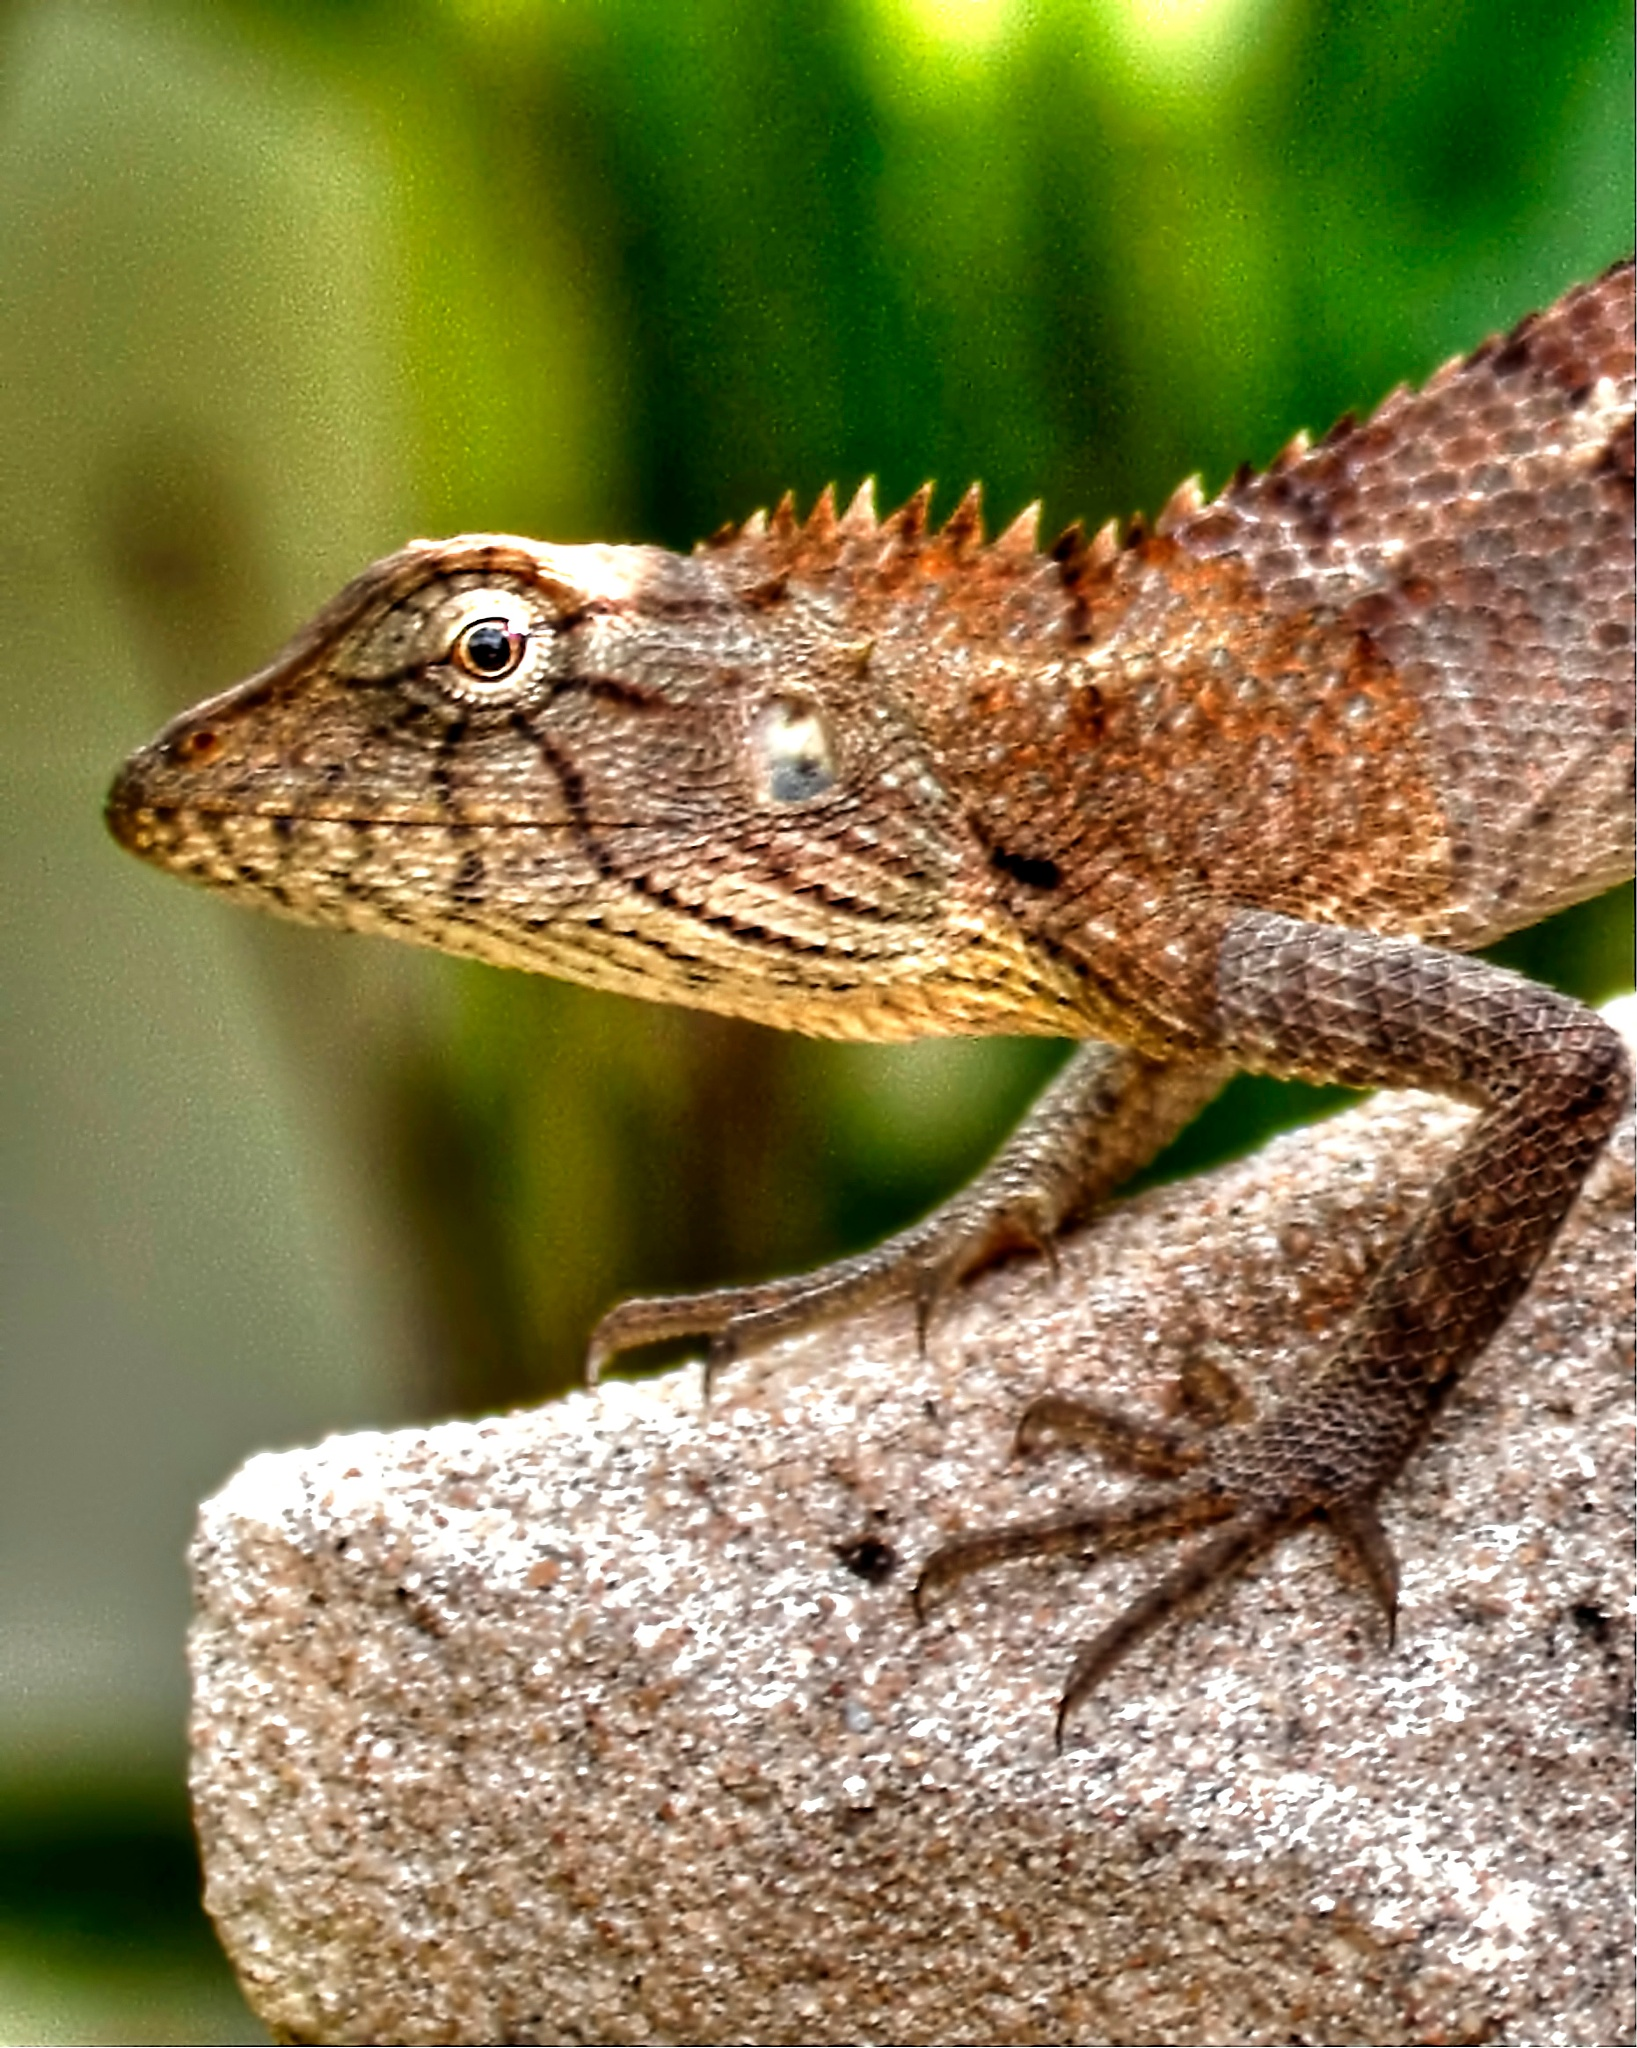 Lizard by WilliamReid